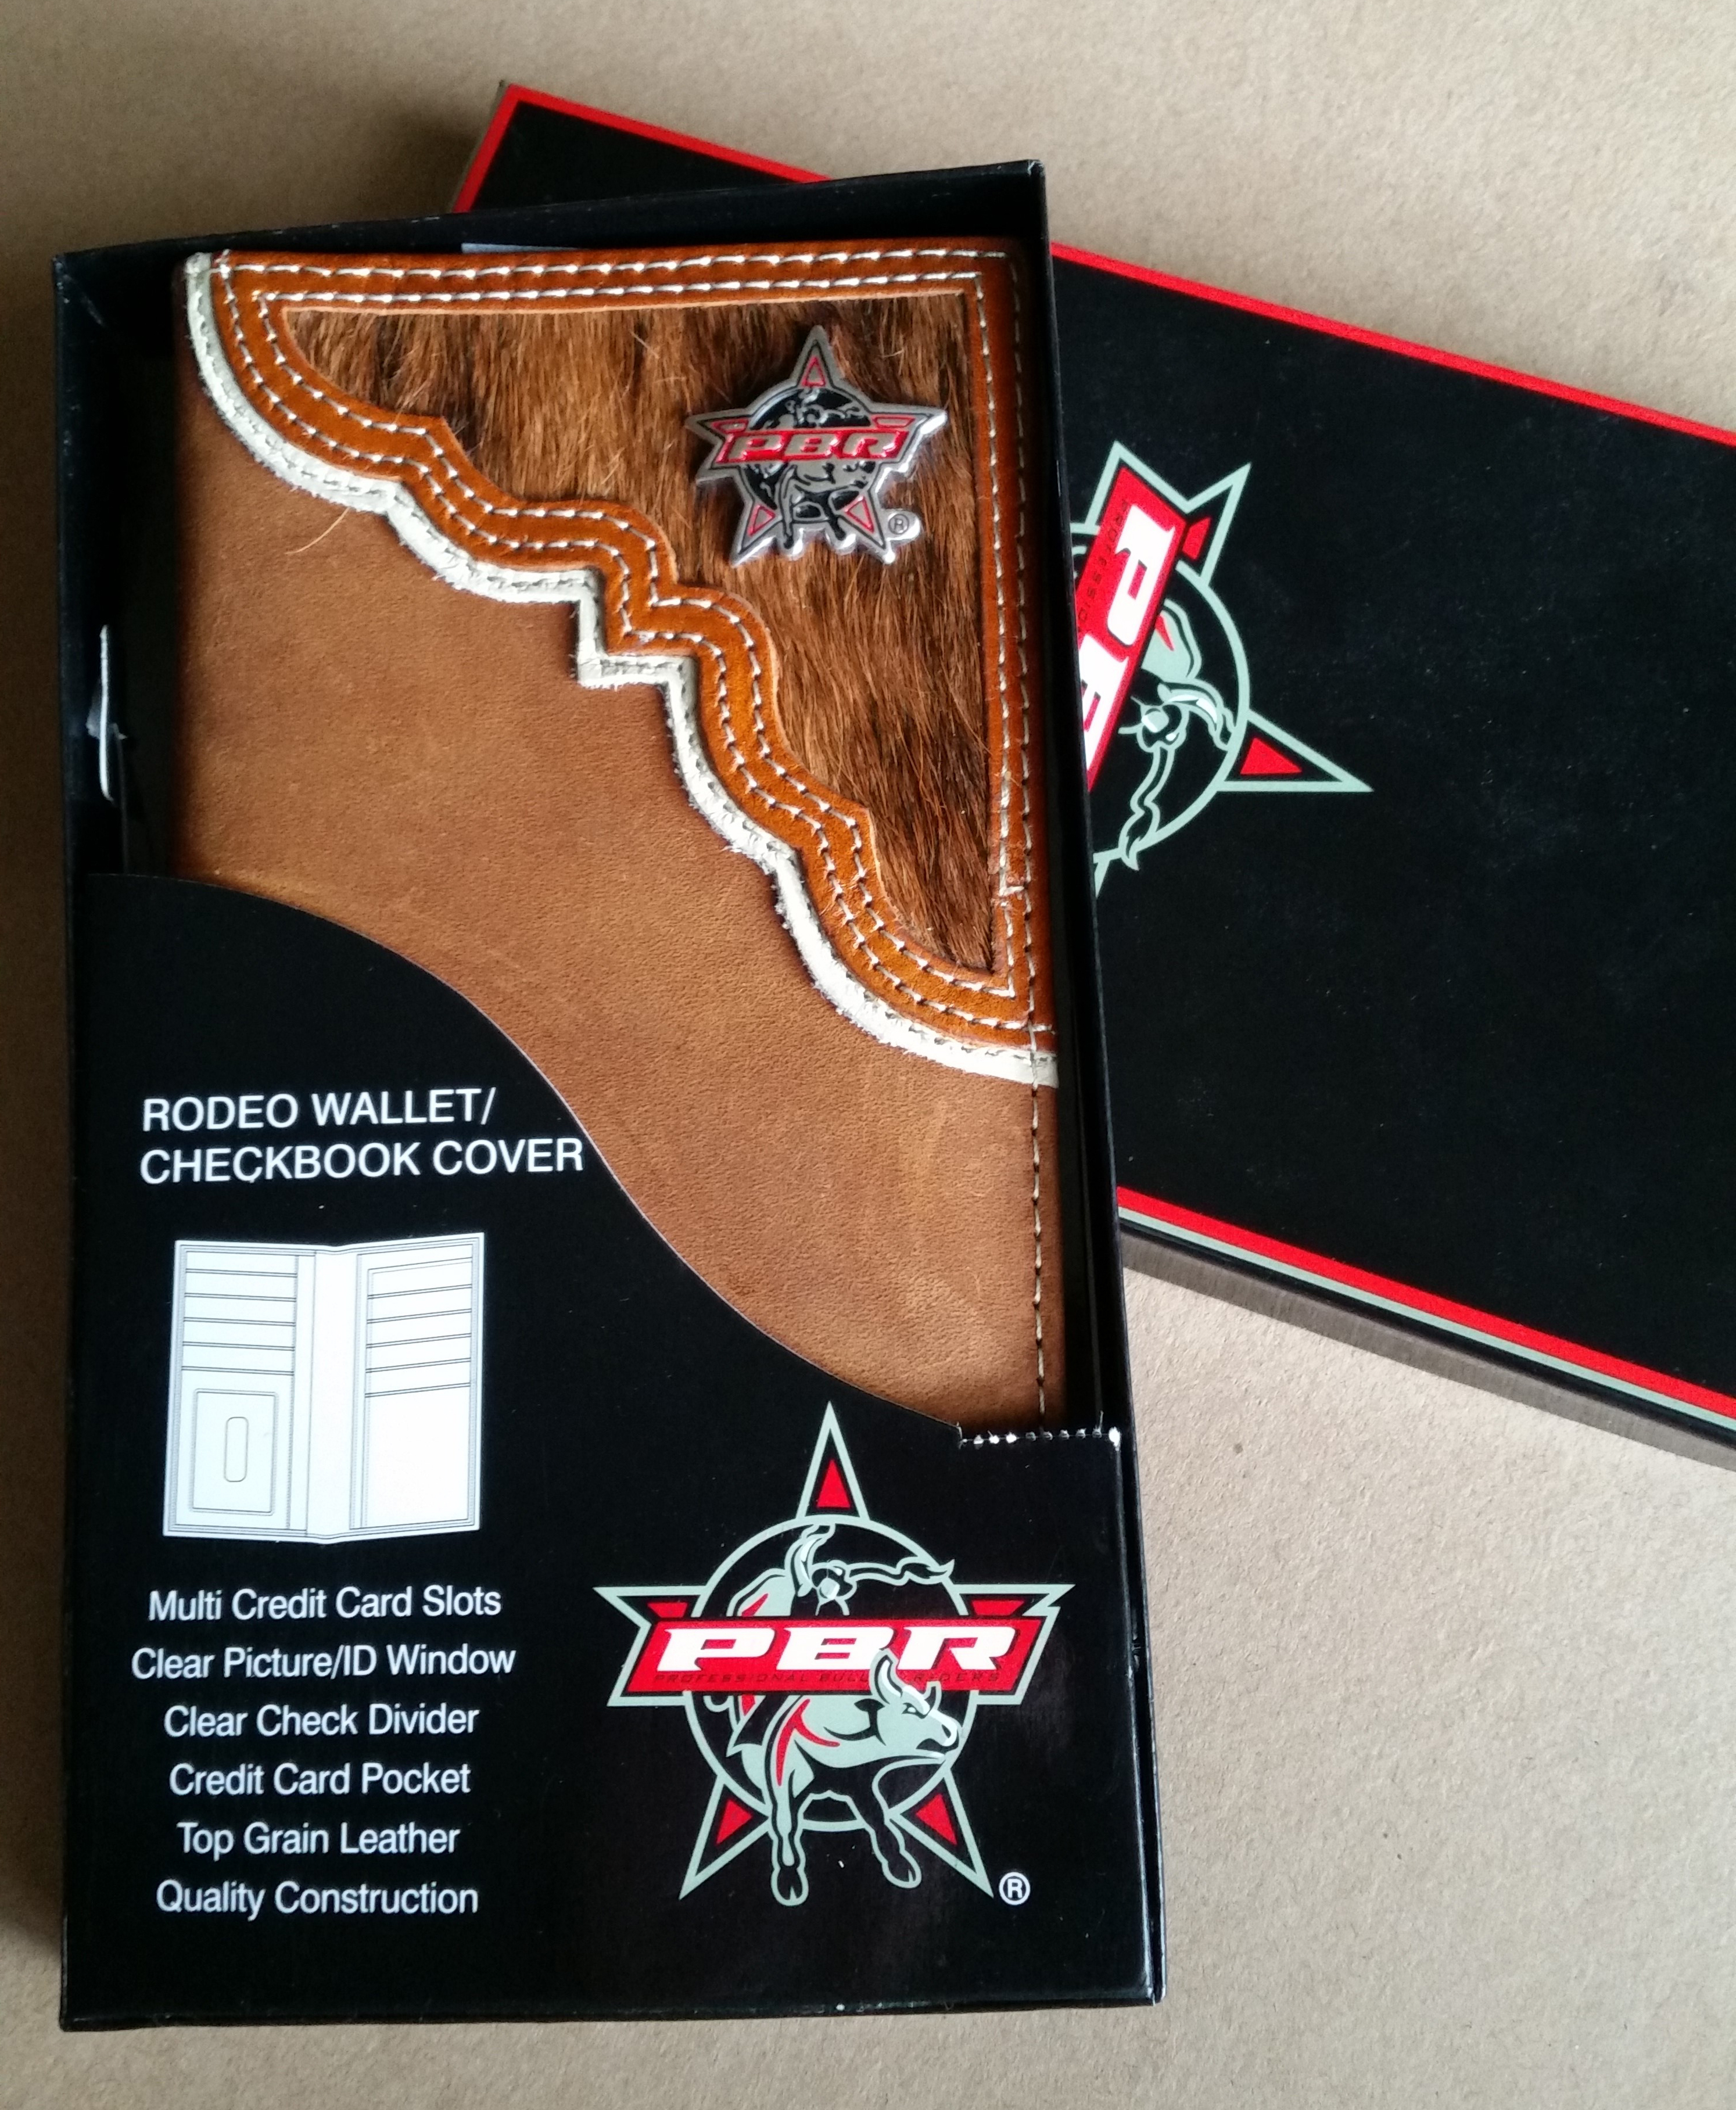 Wallet donated by Mark and Lynn Fairlie